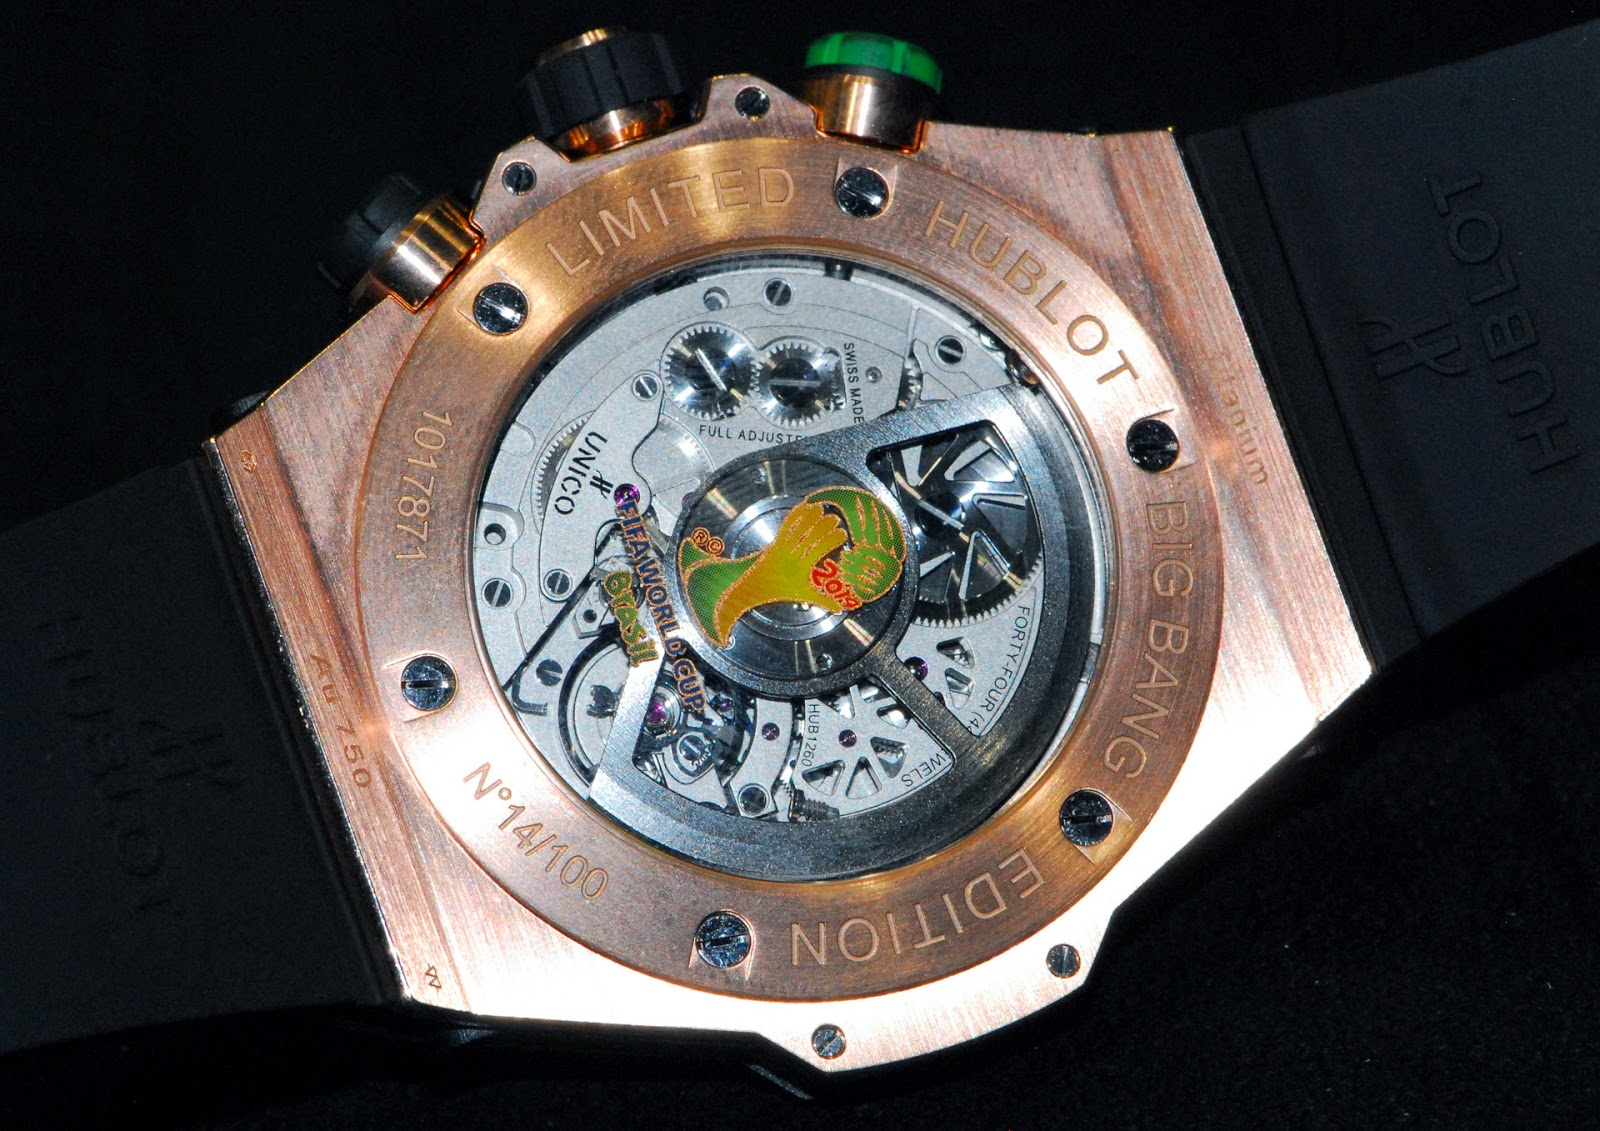 Calibre HUB1260 UNICO Hublot